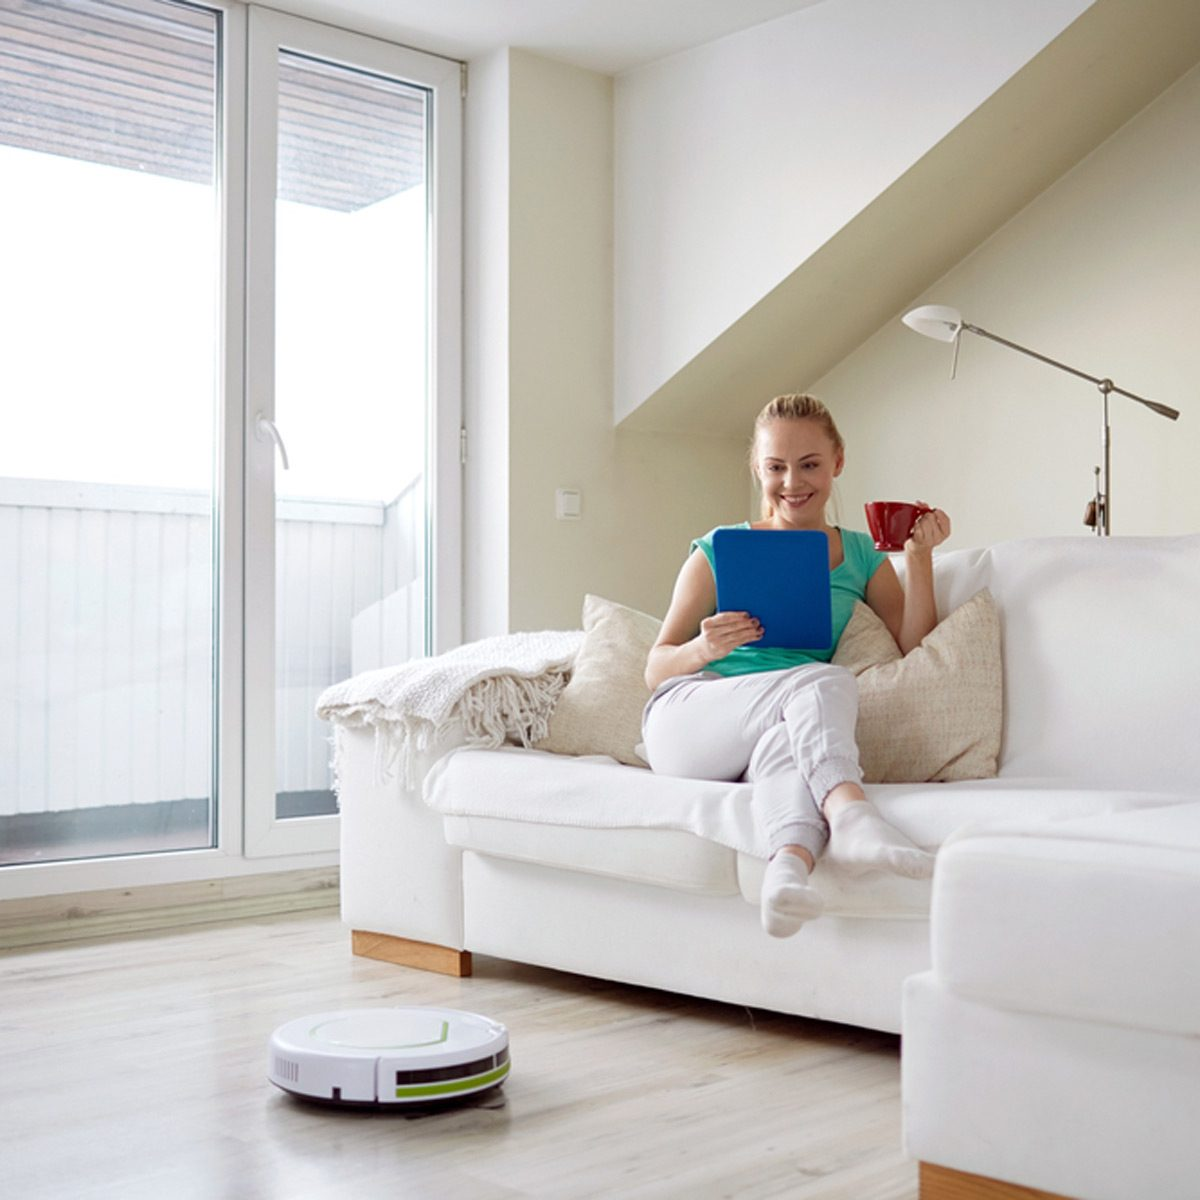 Robot Vacuums Do They Really Work The Family Handyman